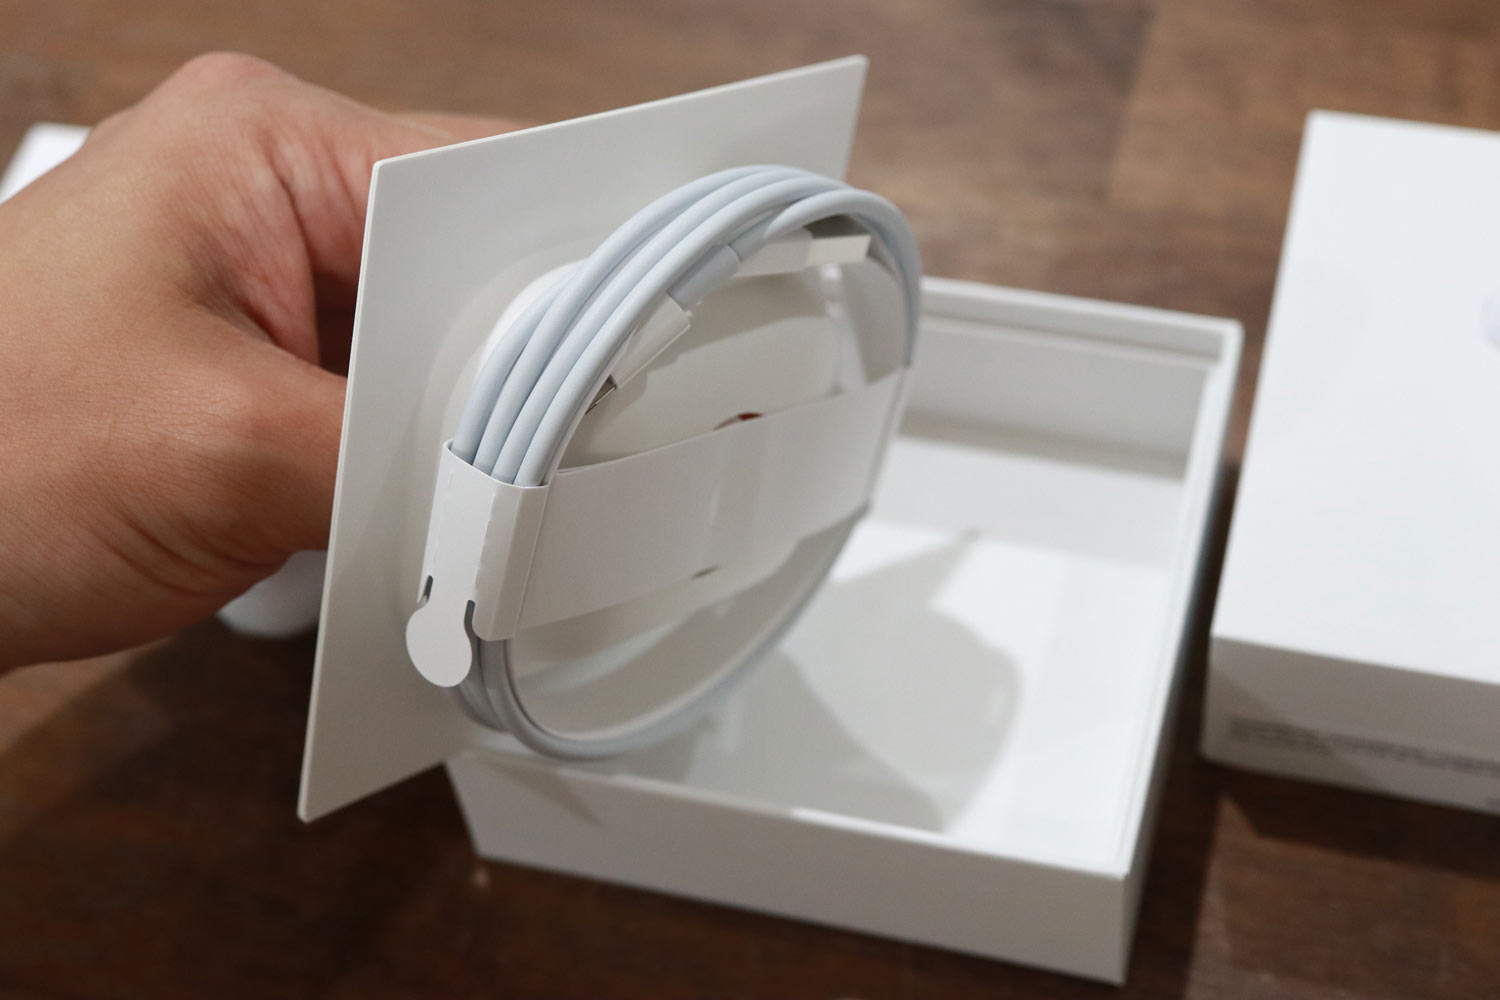 AirPods 付属品